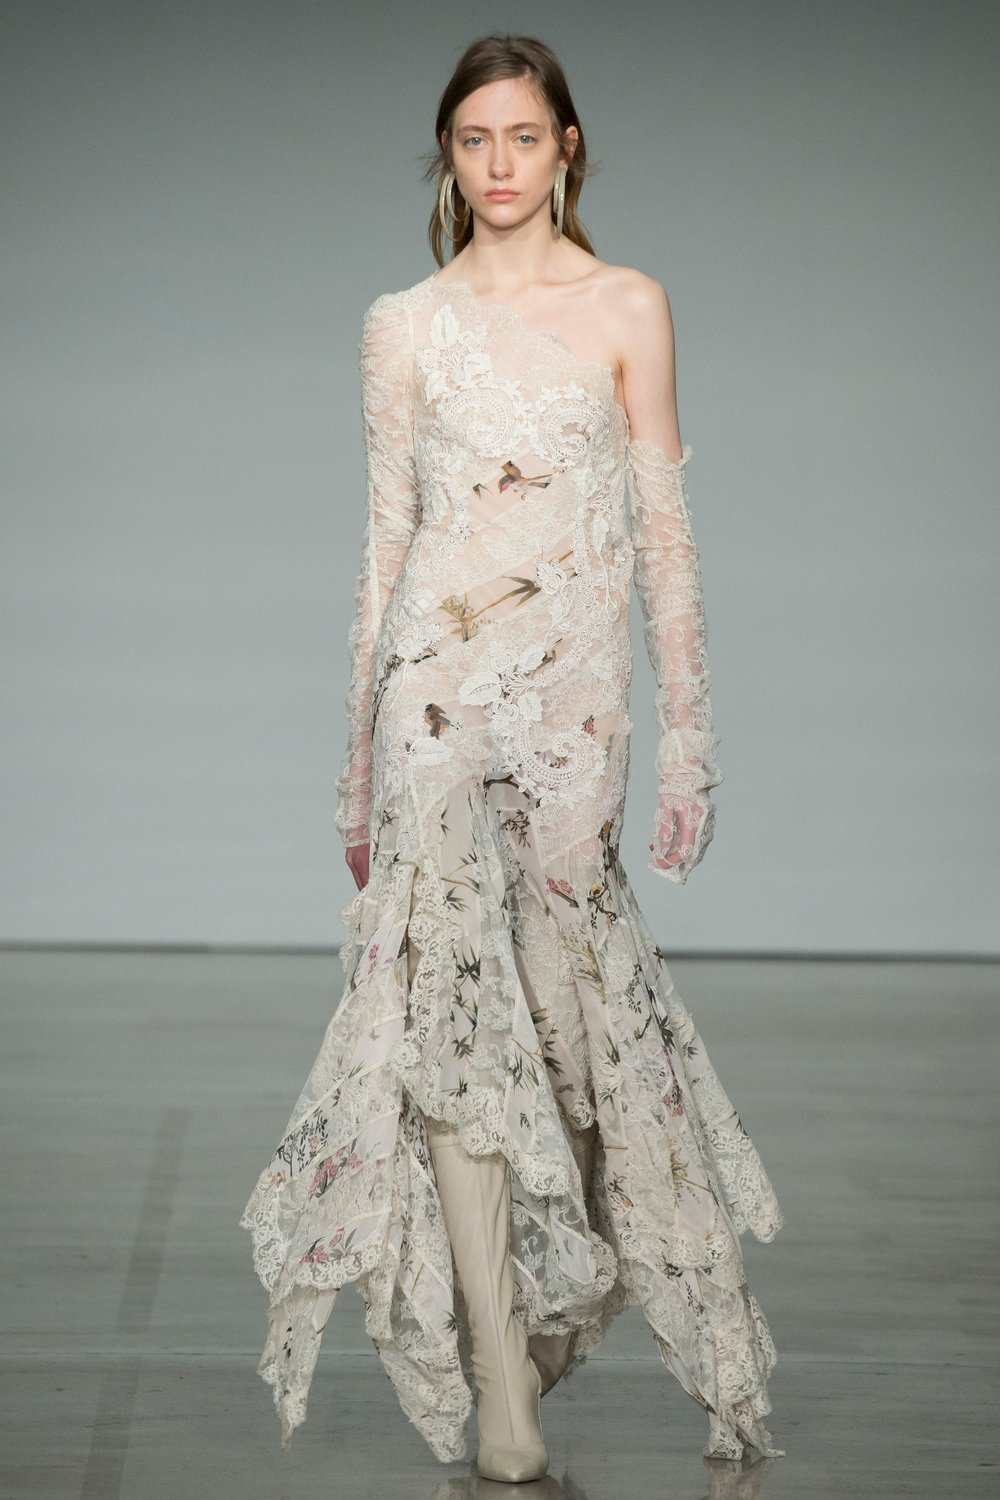 ZIMMERMANN -  ethereal and romantic lace and floral details